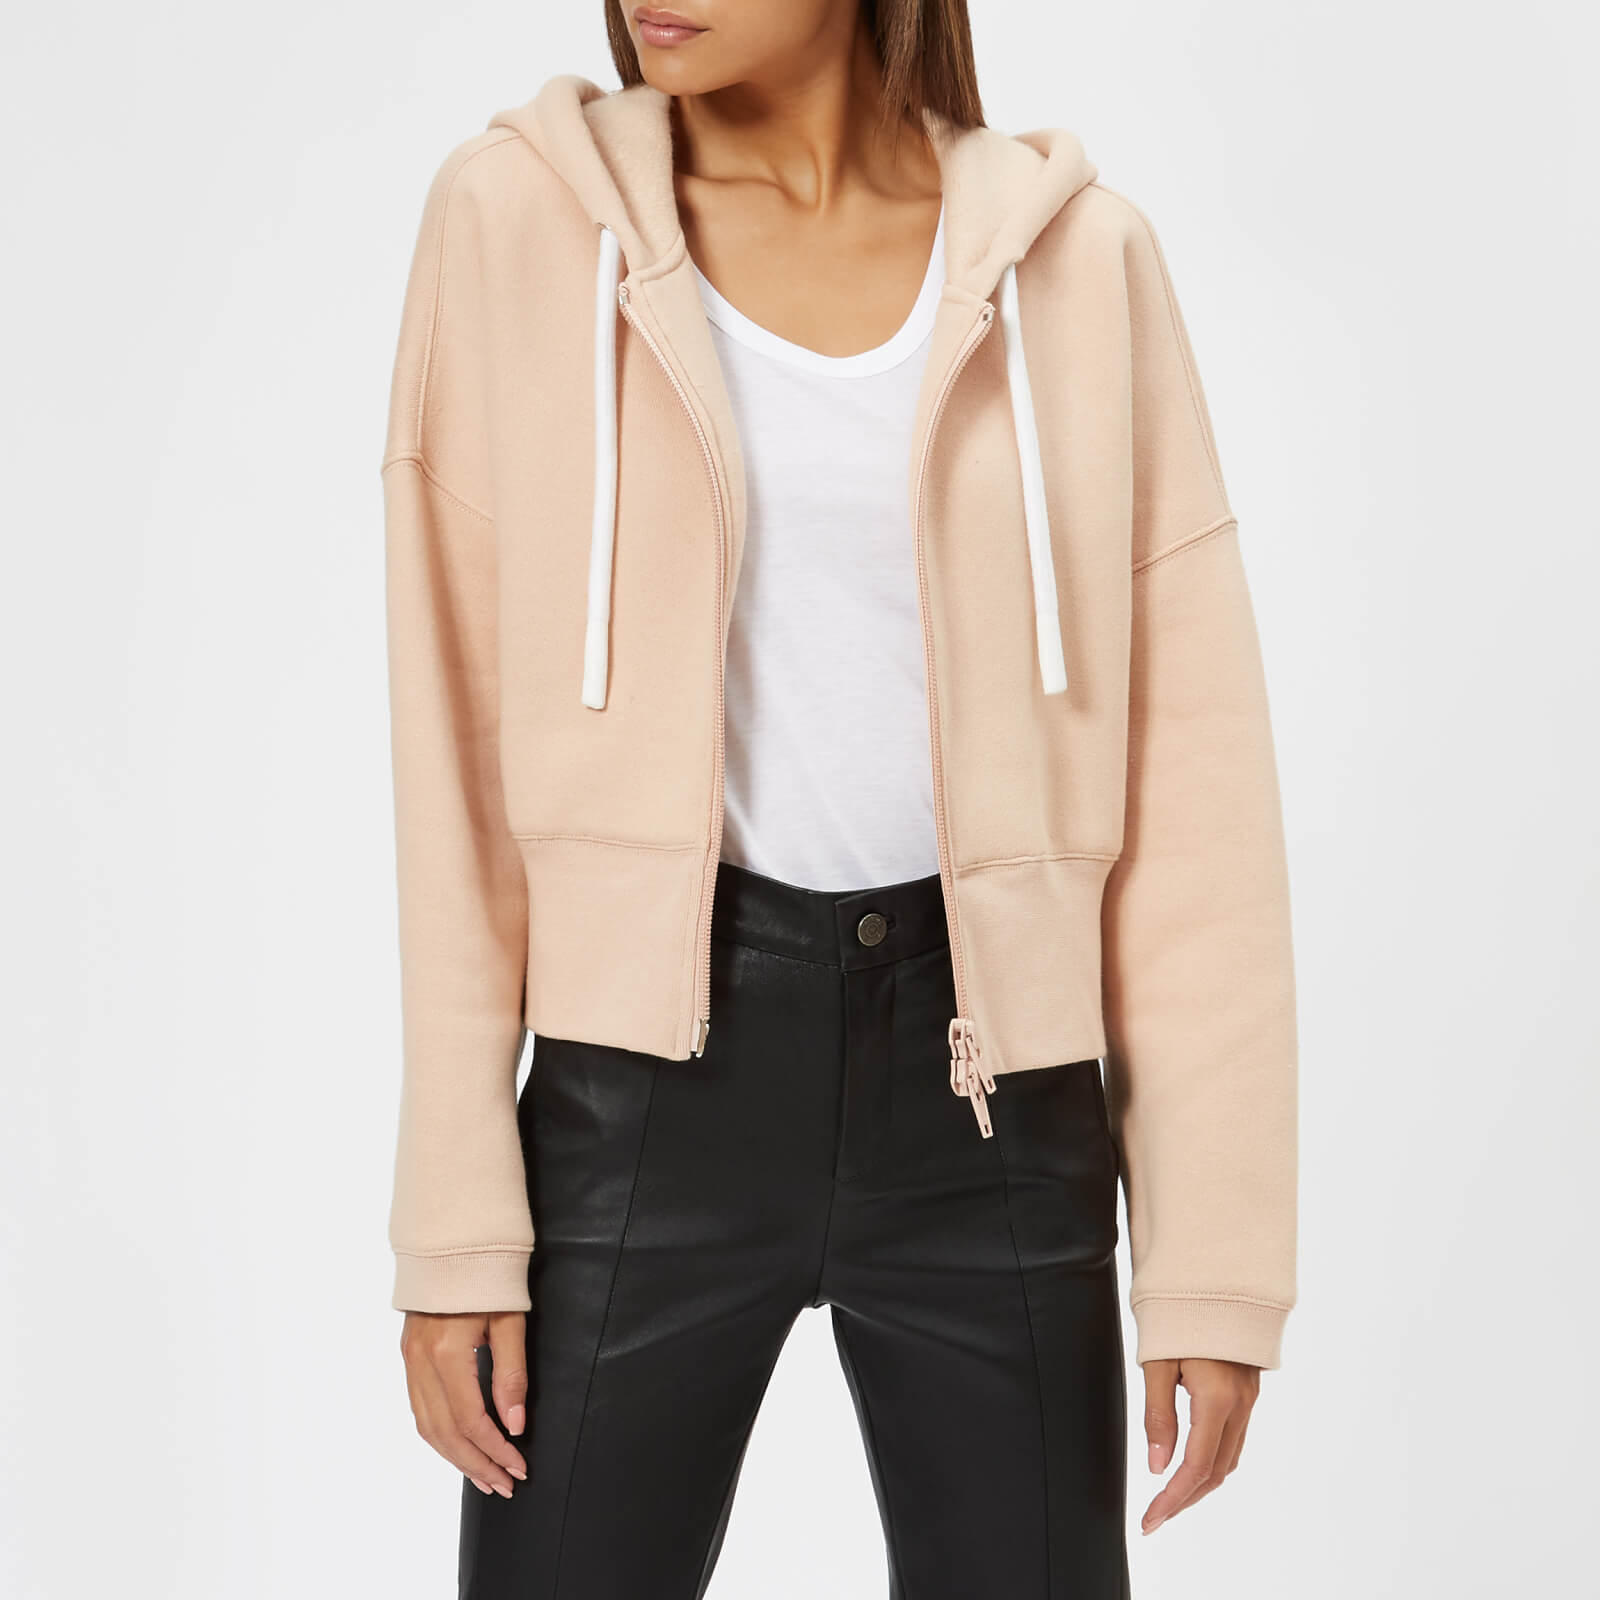 3c8baef0a396e T by Alexander Wang Women s Heavy French Terry Cardigan Sweatshirt -  Apricot - Free UK Delivery over £50